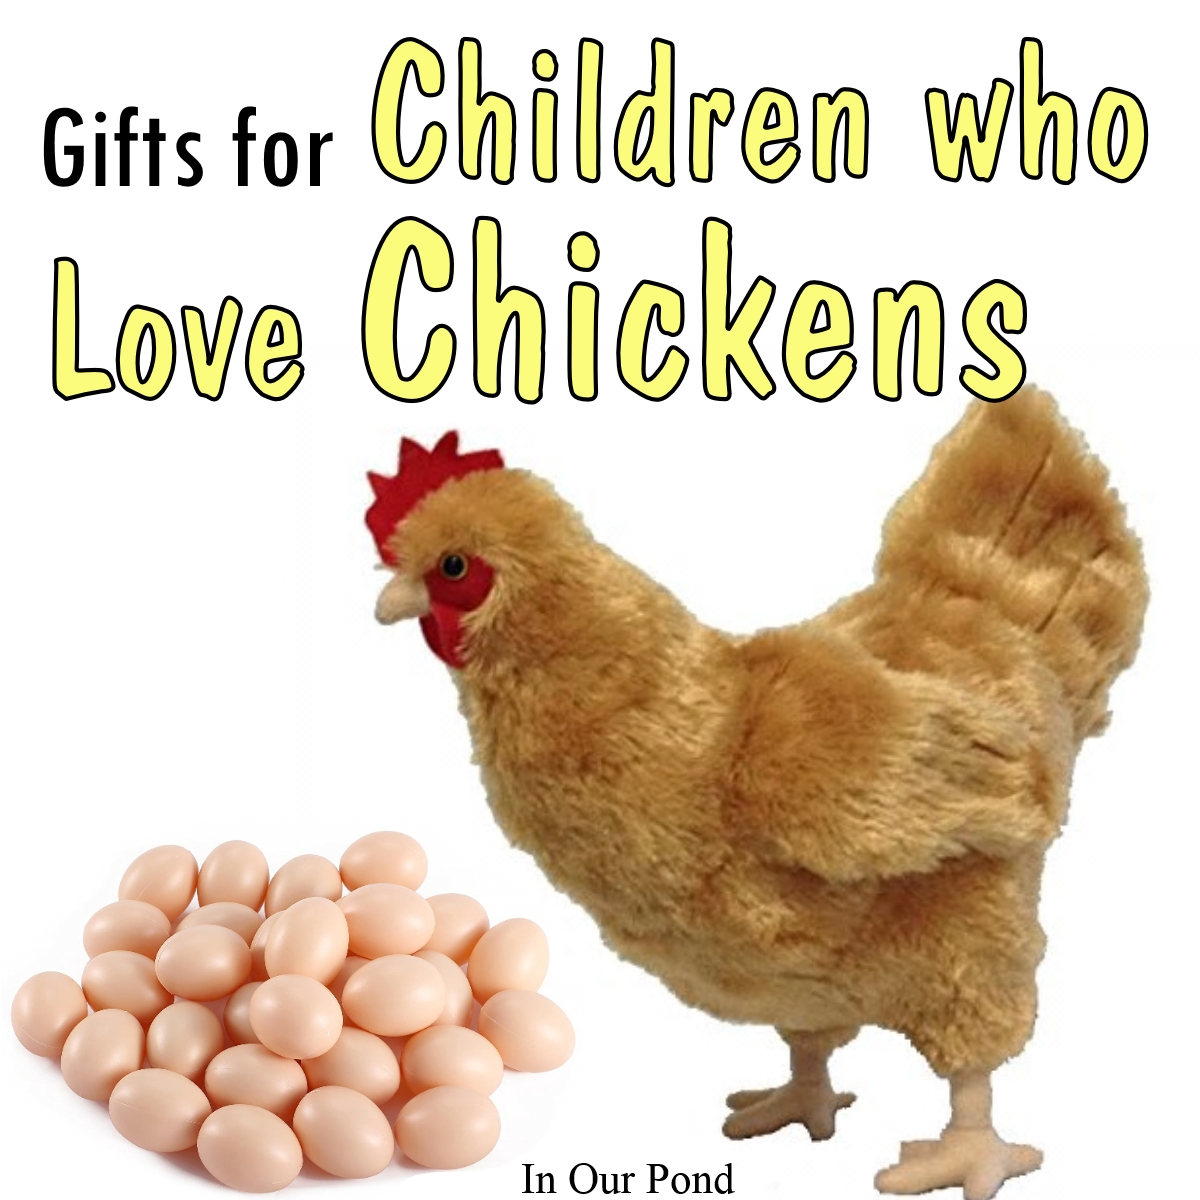 Gifts for Children Who Love Chickens (a gift guide) - In Our Pond